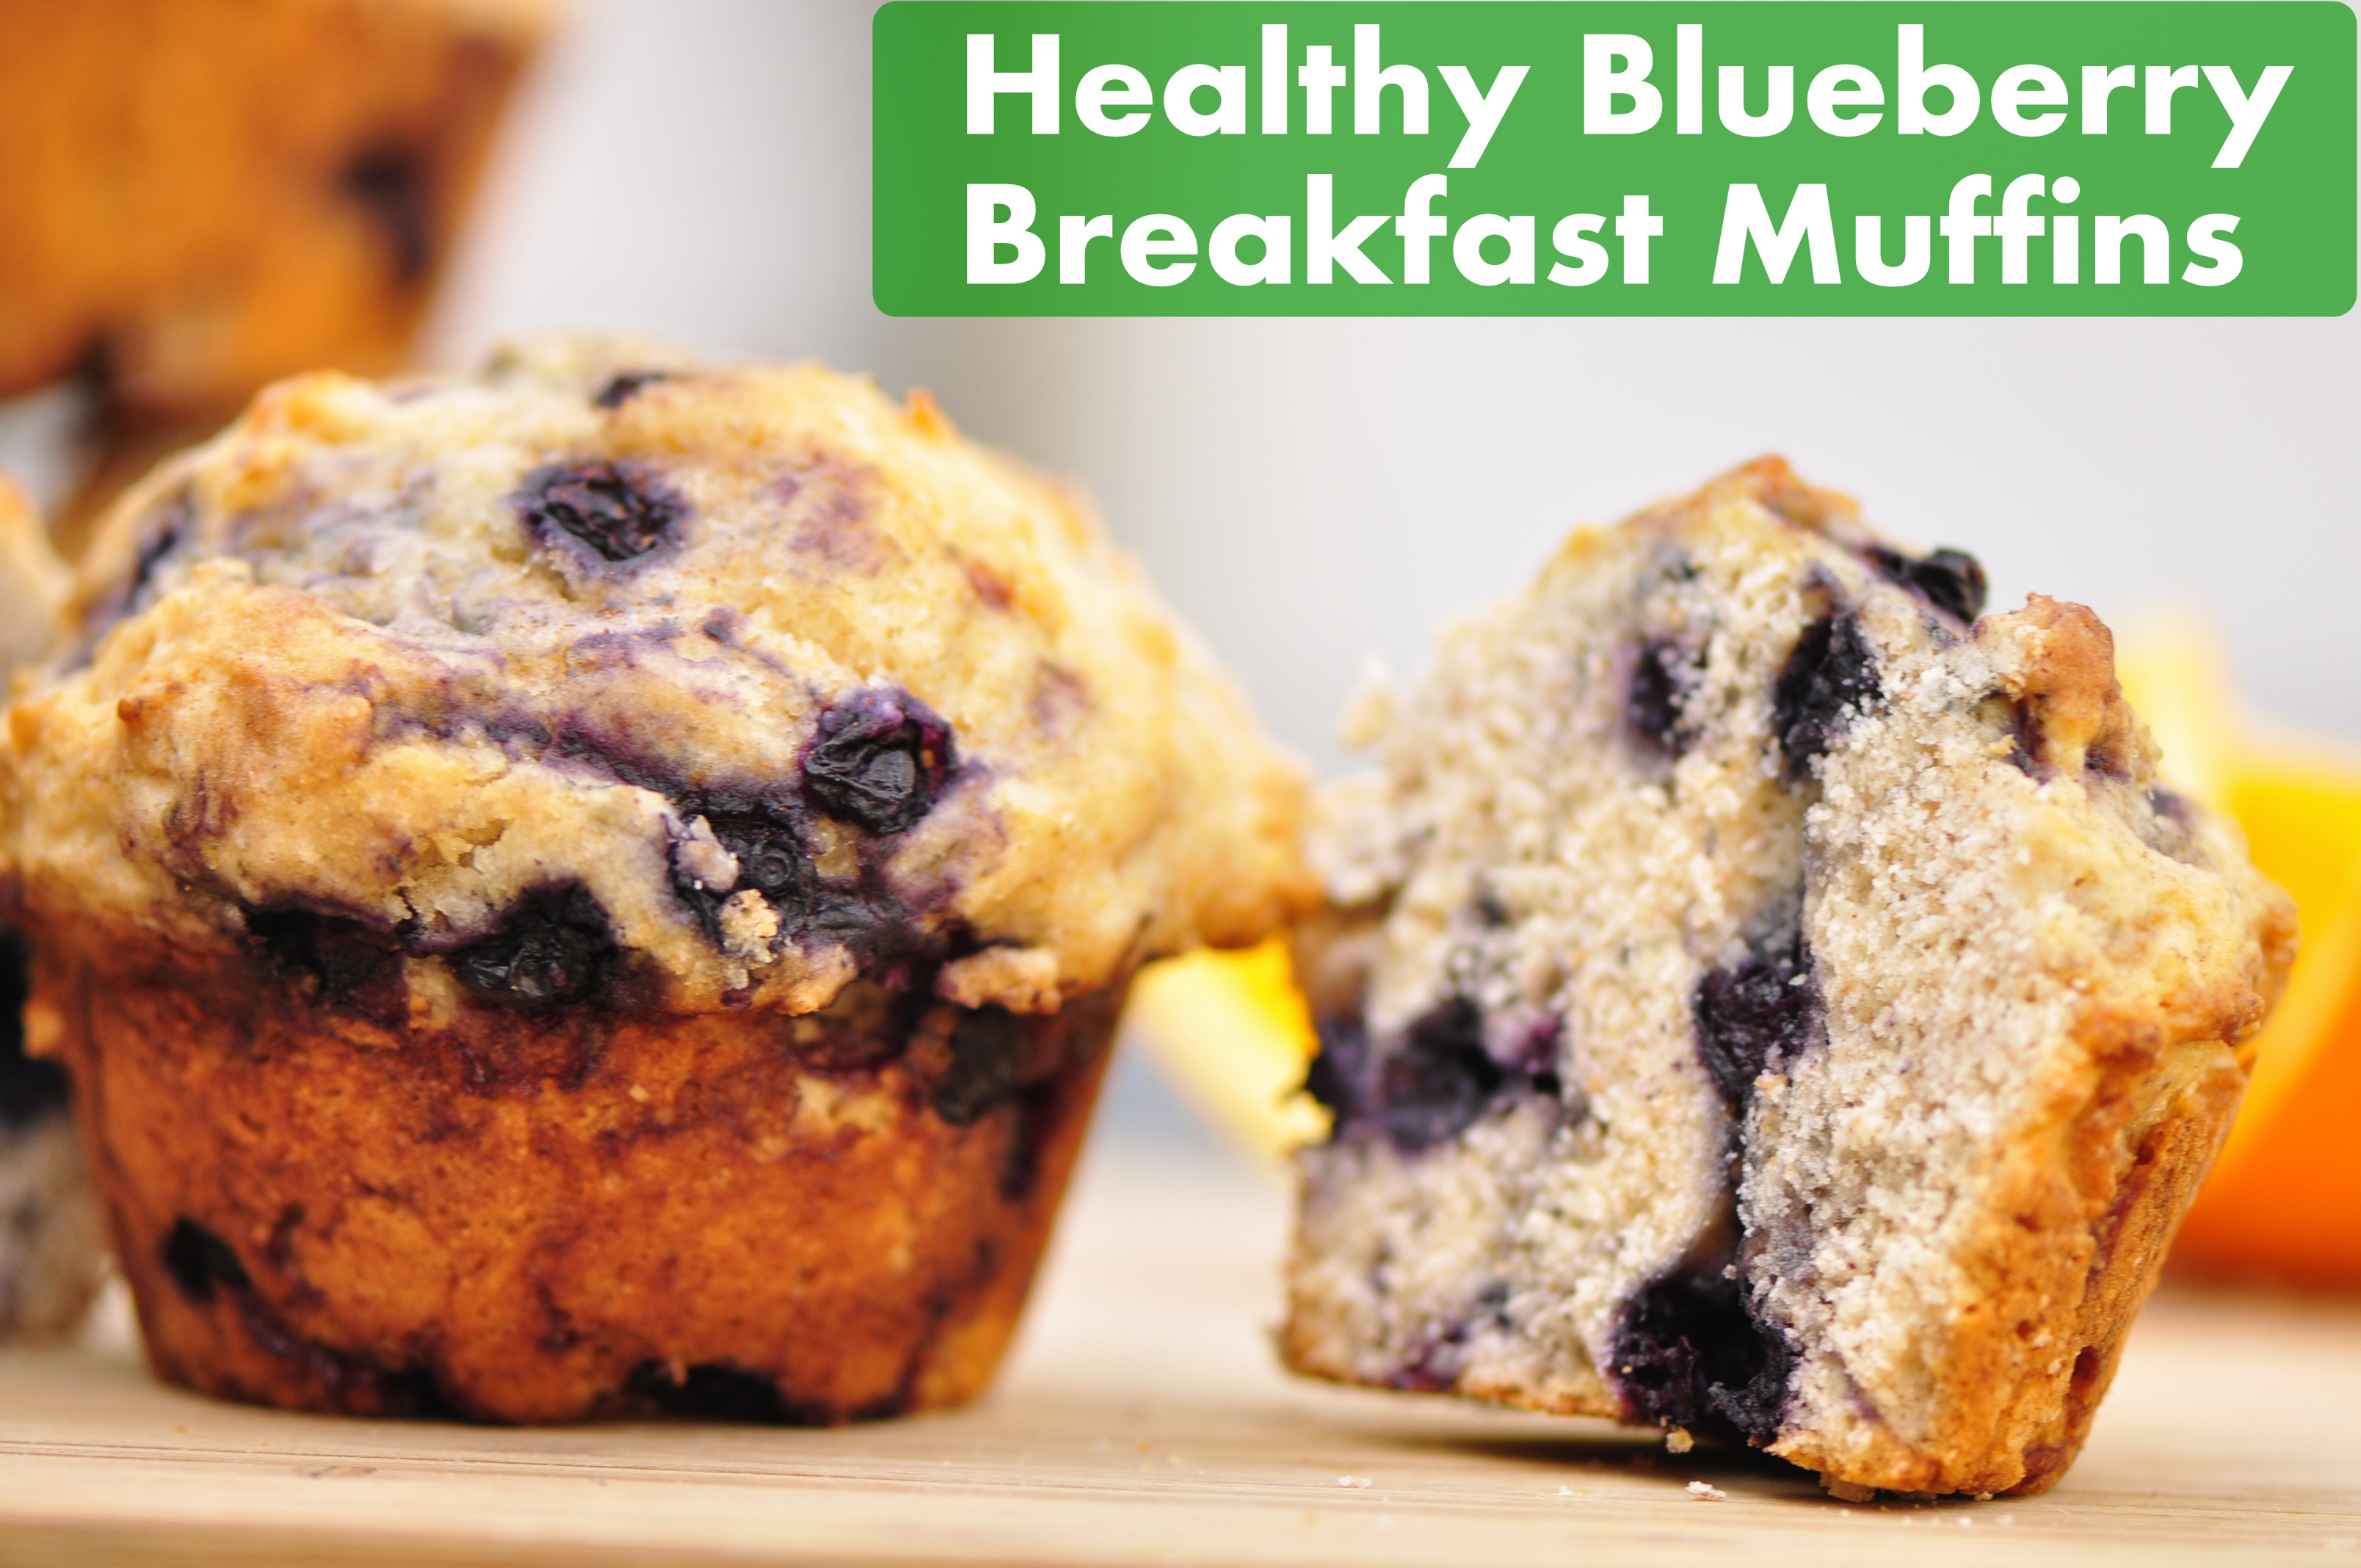 Healthy Breakfast Muffin Recipe  Healthy Blueberry Breakfast Muffins – the ve arian ginger